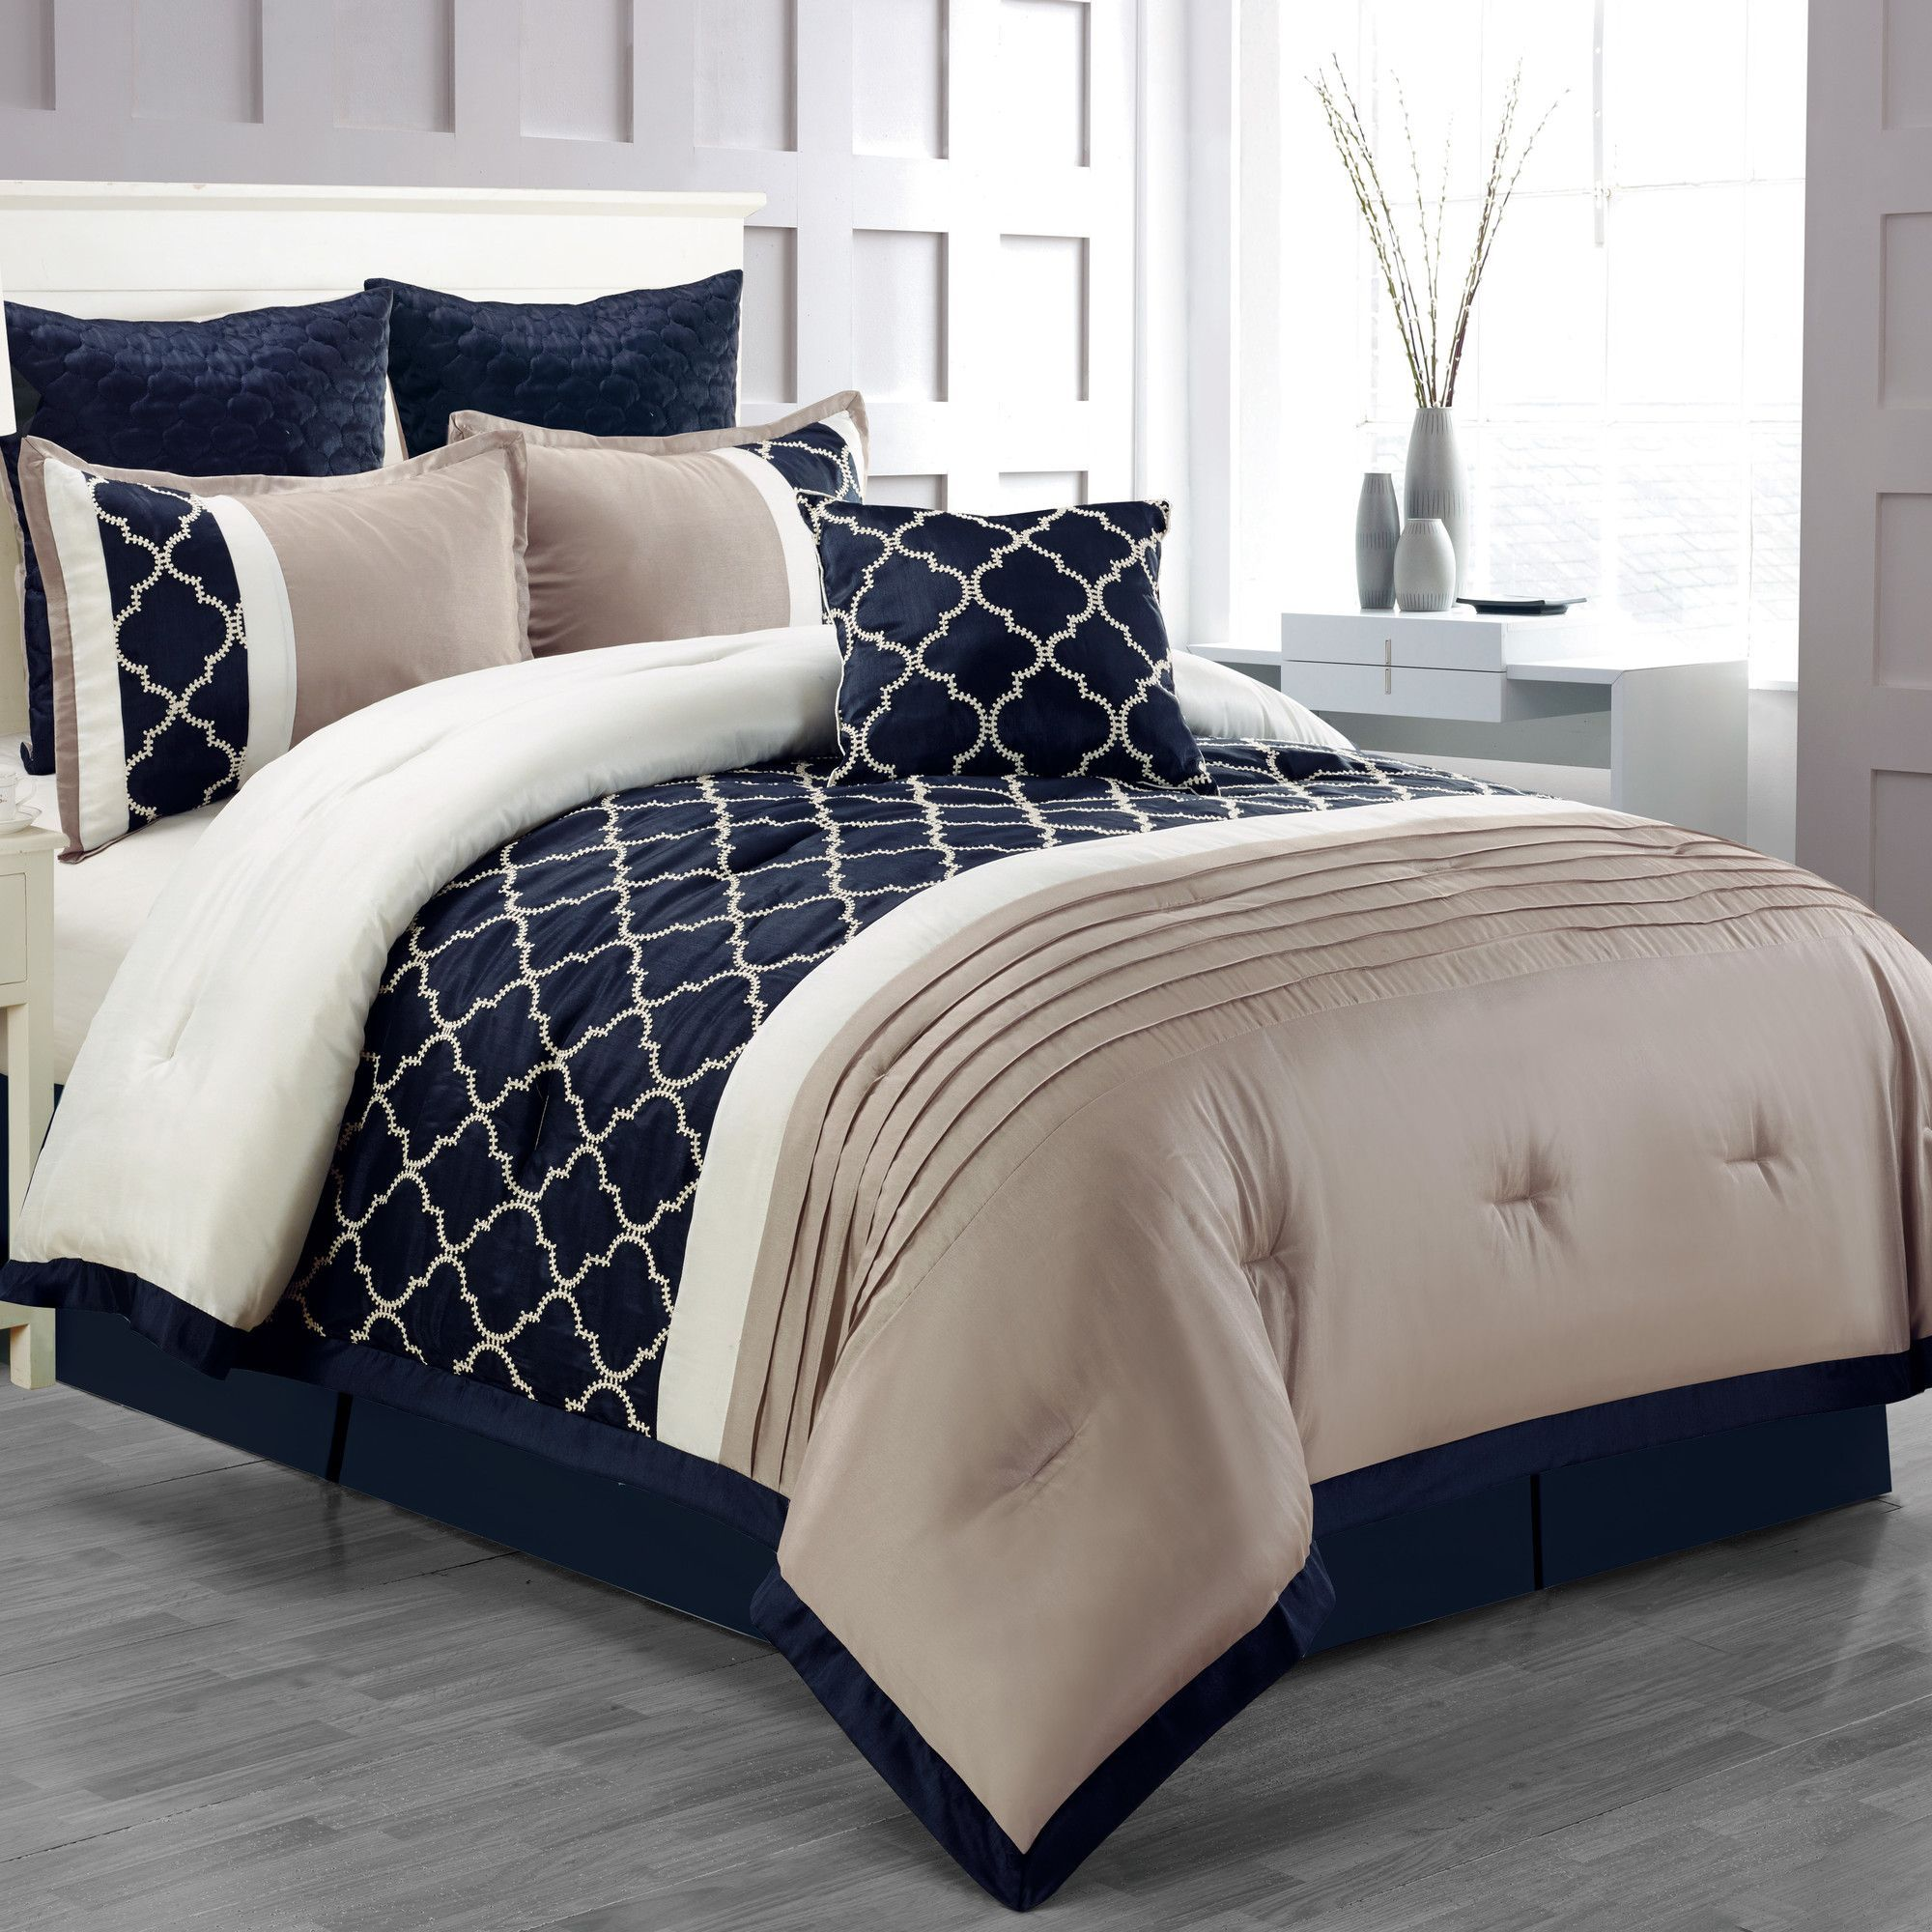 Shop Wayfair for Bedding Sets to match every style and bud Enjoy